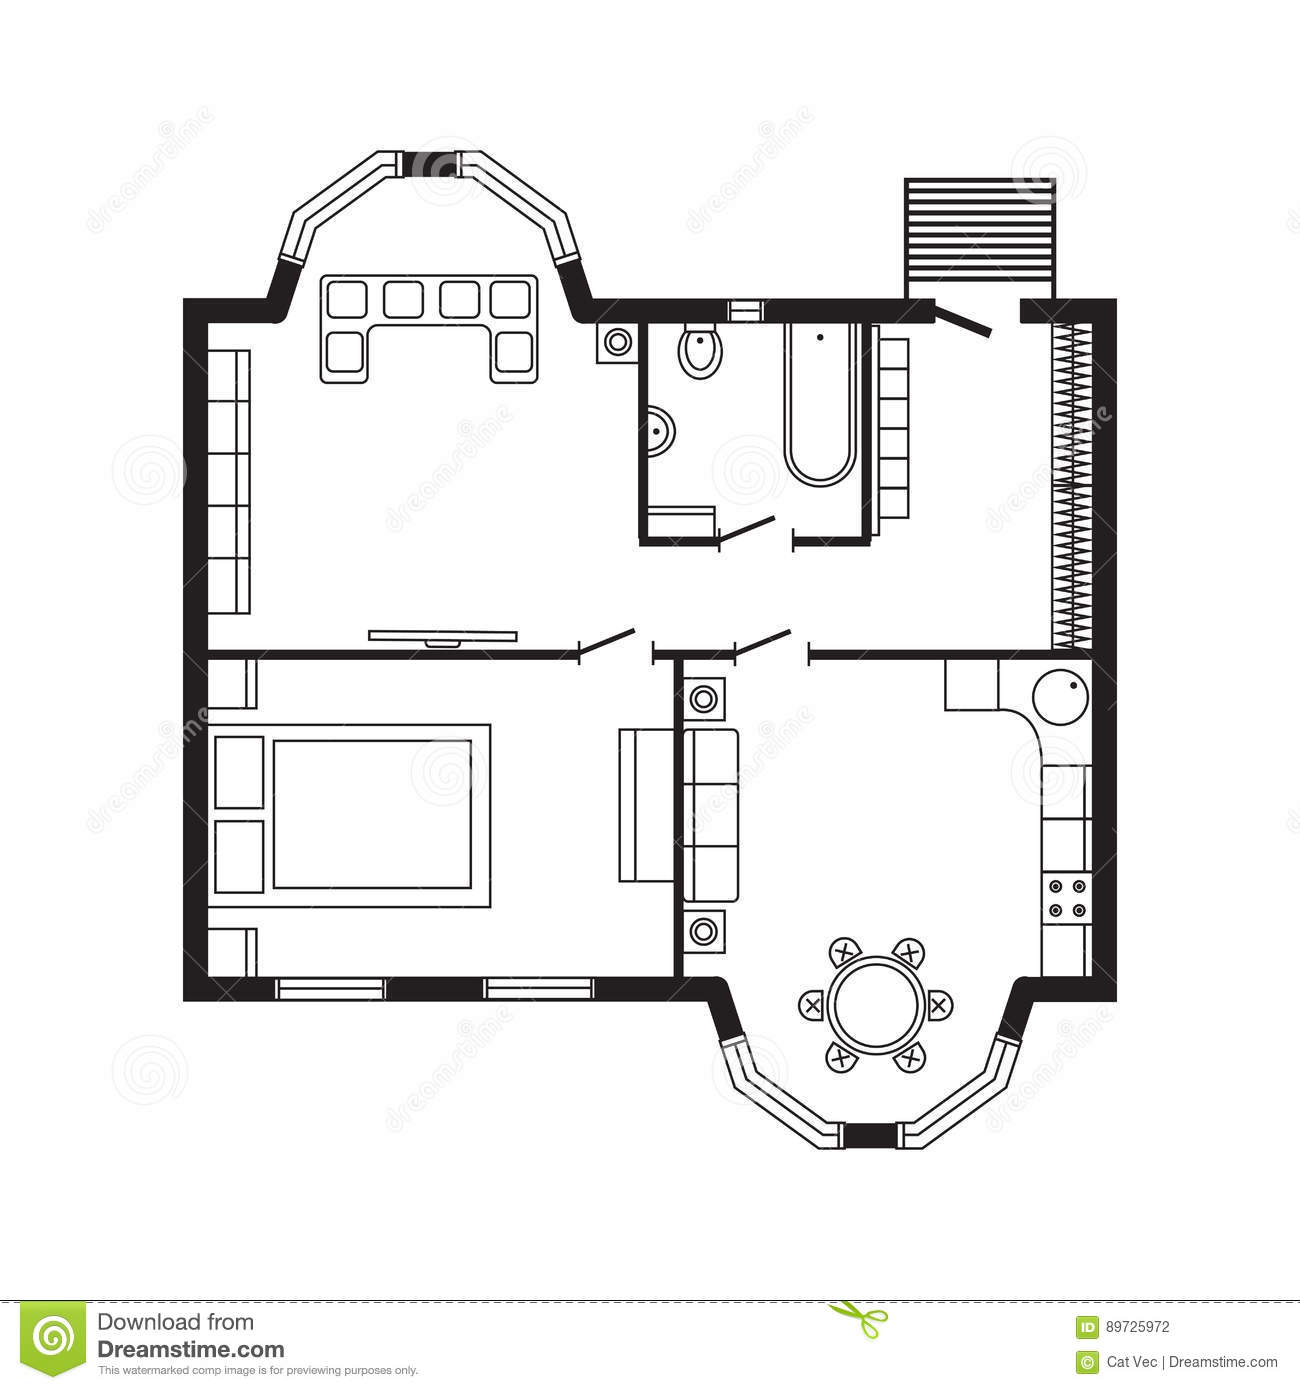 Modern office architectural plan interior furniture and for Home architecture planning engineering consultants